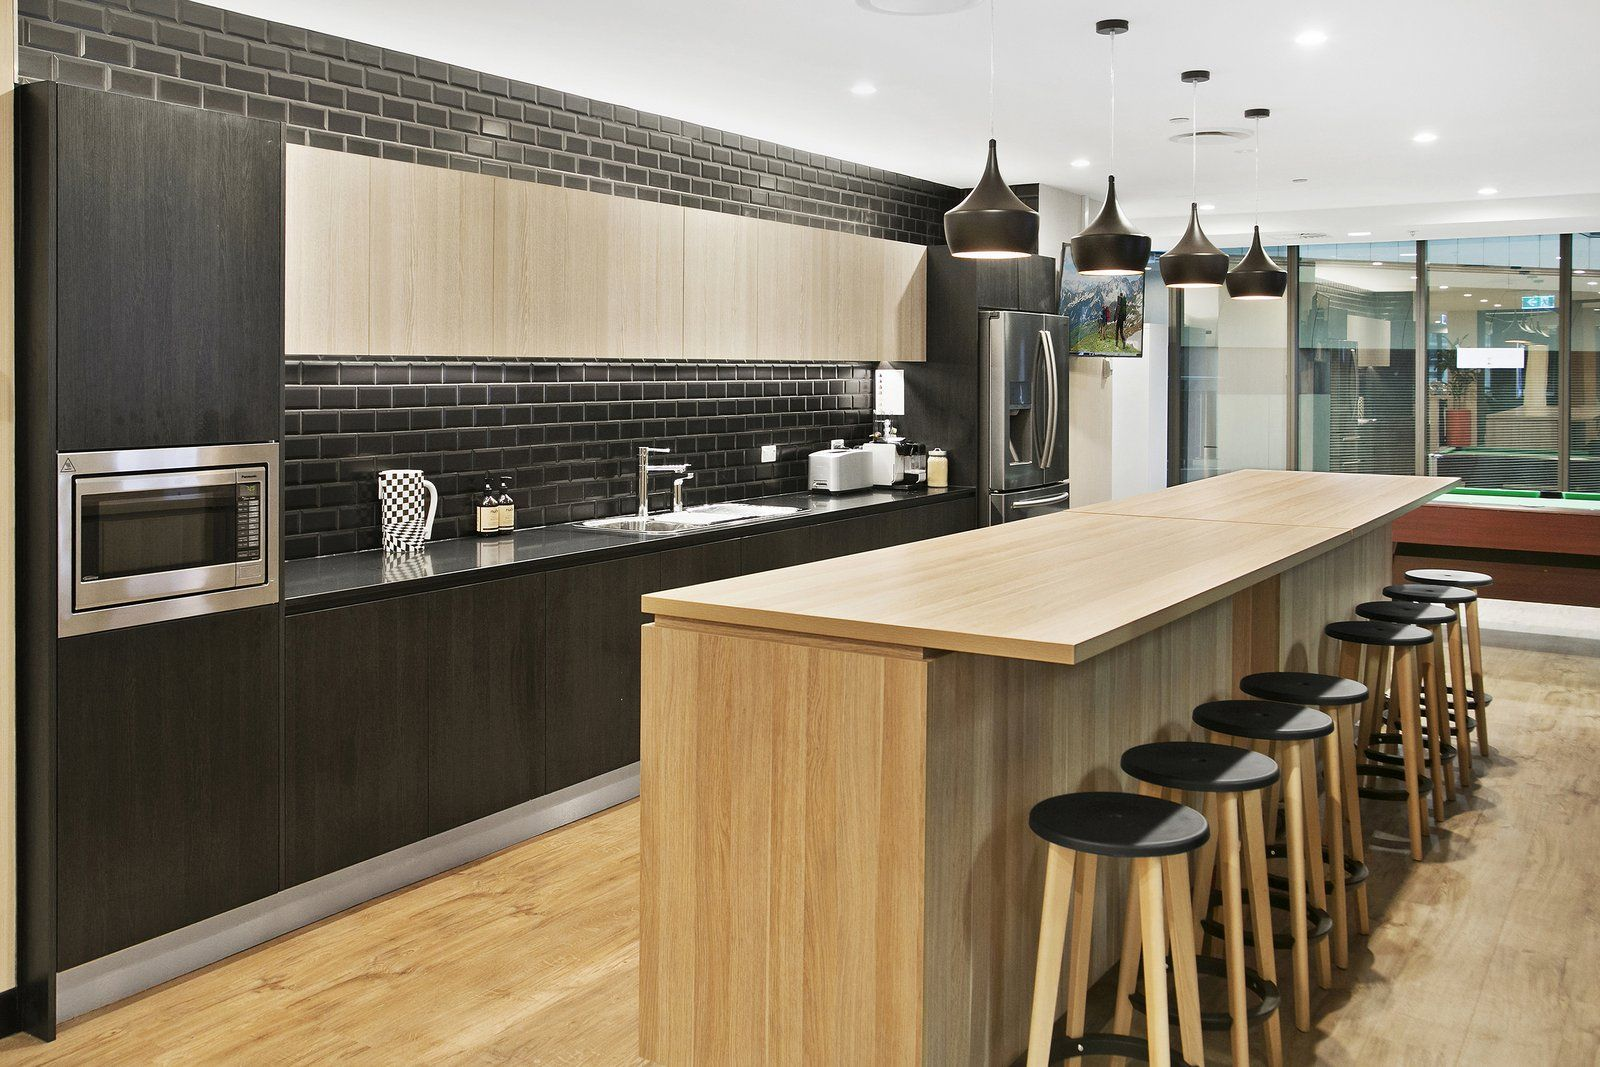 This stunning modern kitchen design is in polytec Natural